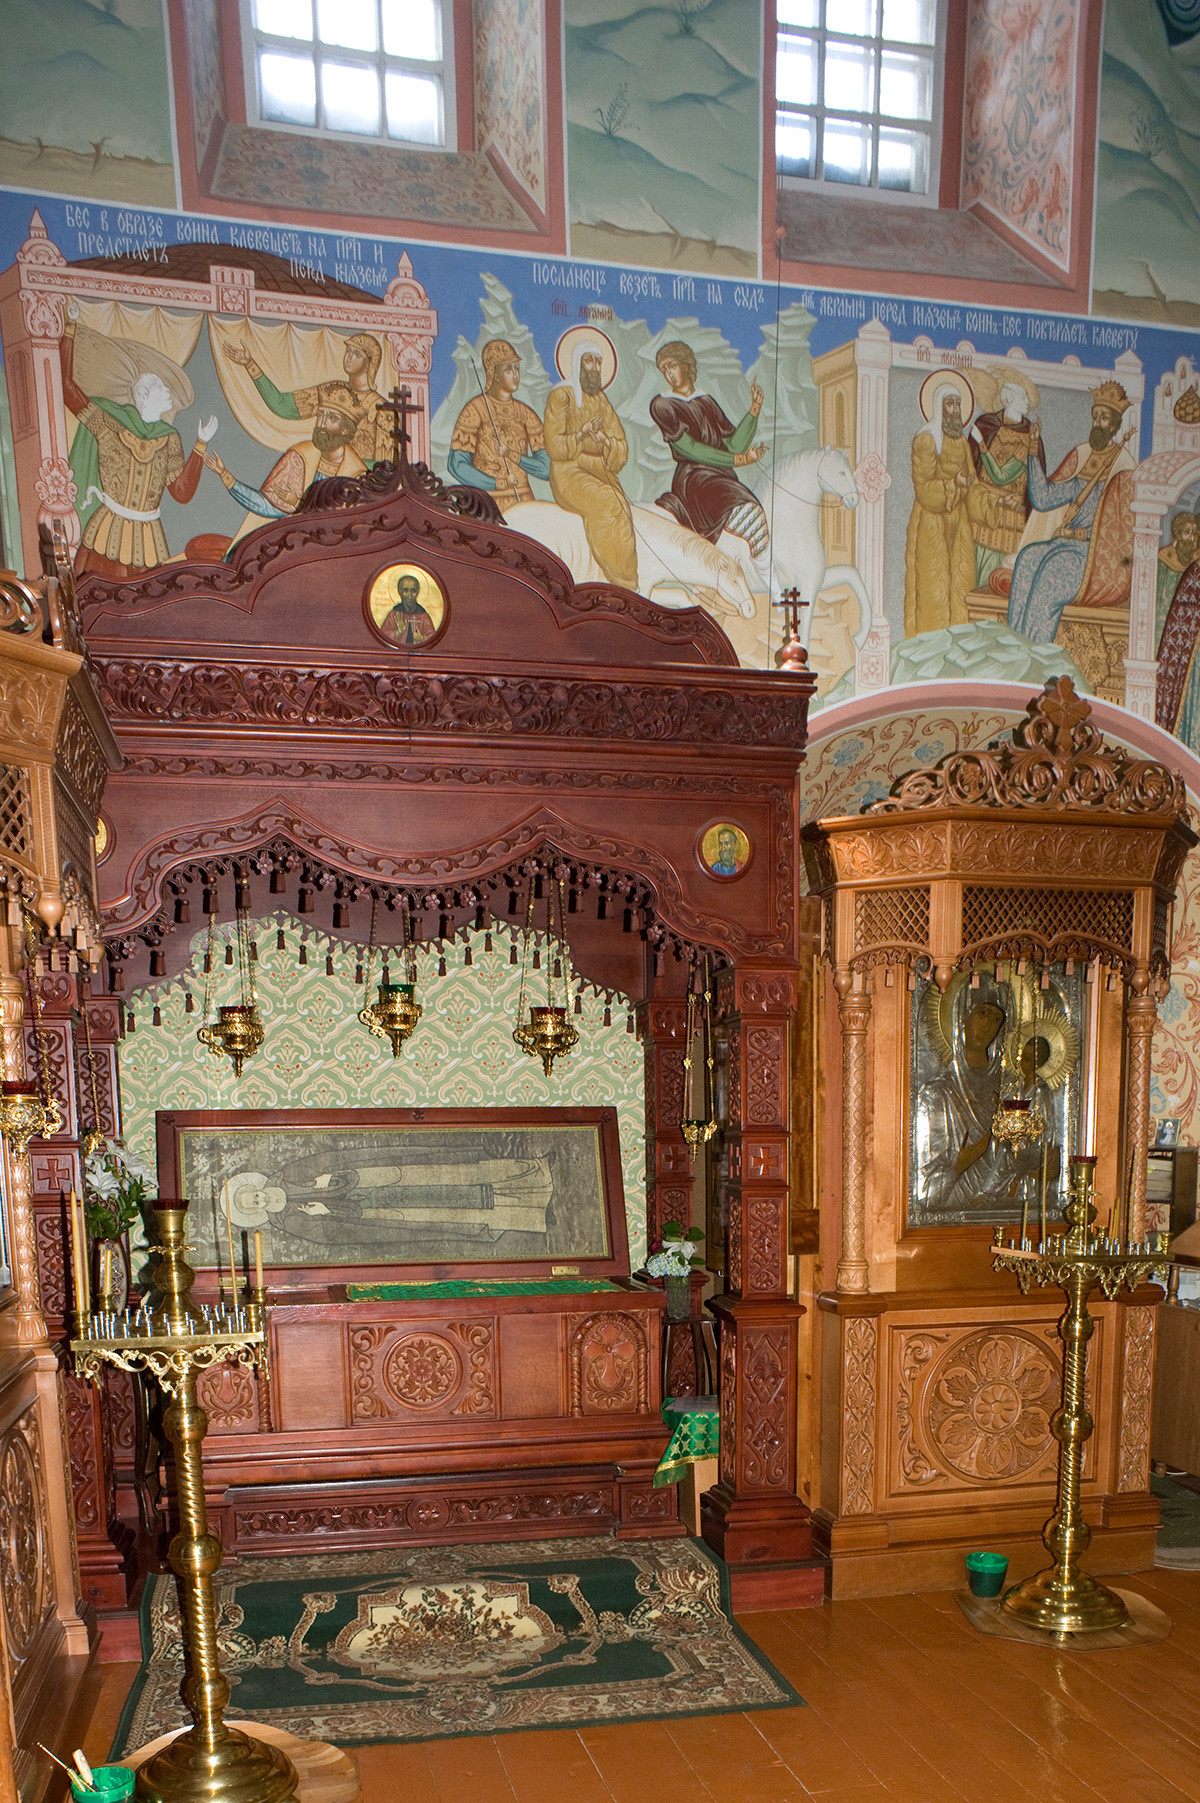 St. Avraamy Epiphany Monastery. Church of St. Nicholas over Holy Gate, Interior, north wall with sarcophagus containing relics of St. Avraamy of Rostov. July 6, 2019